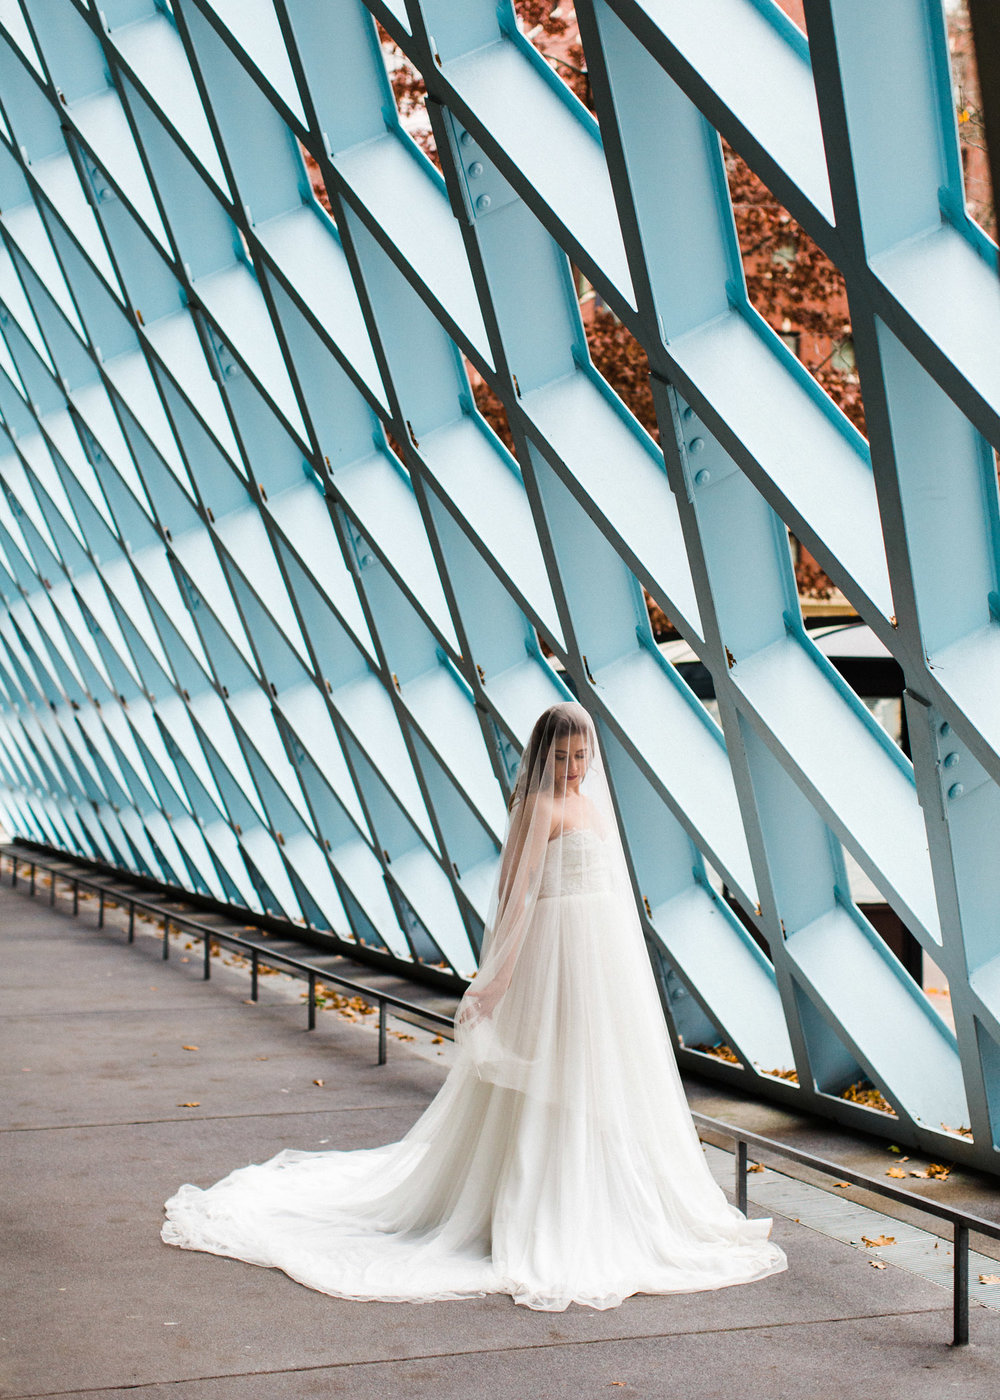 seattle public library wedding photography 2.jpg